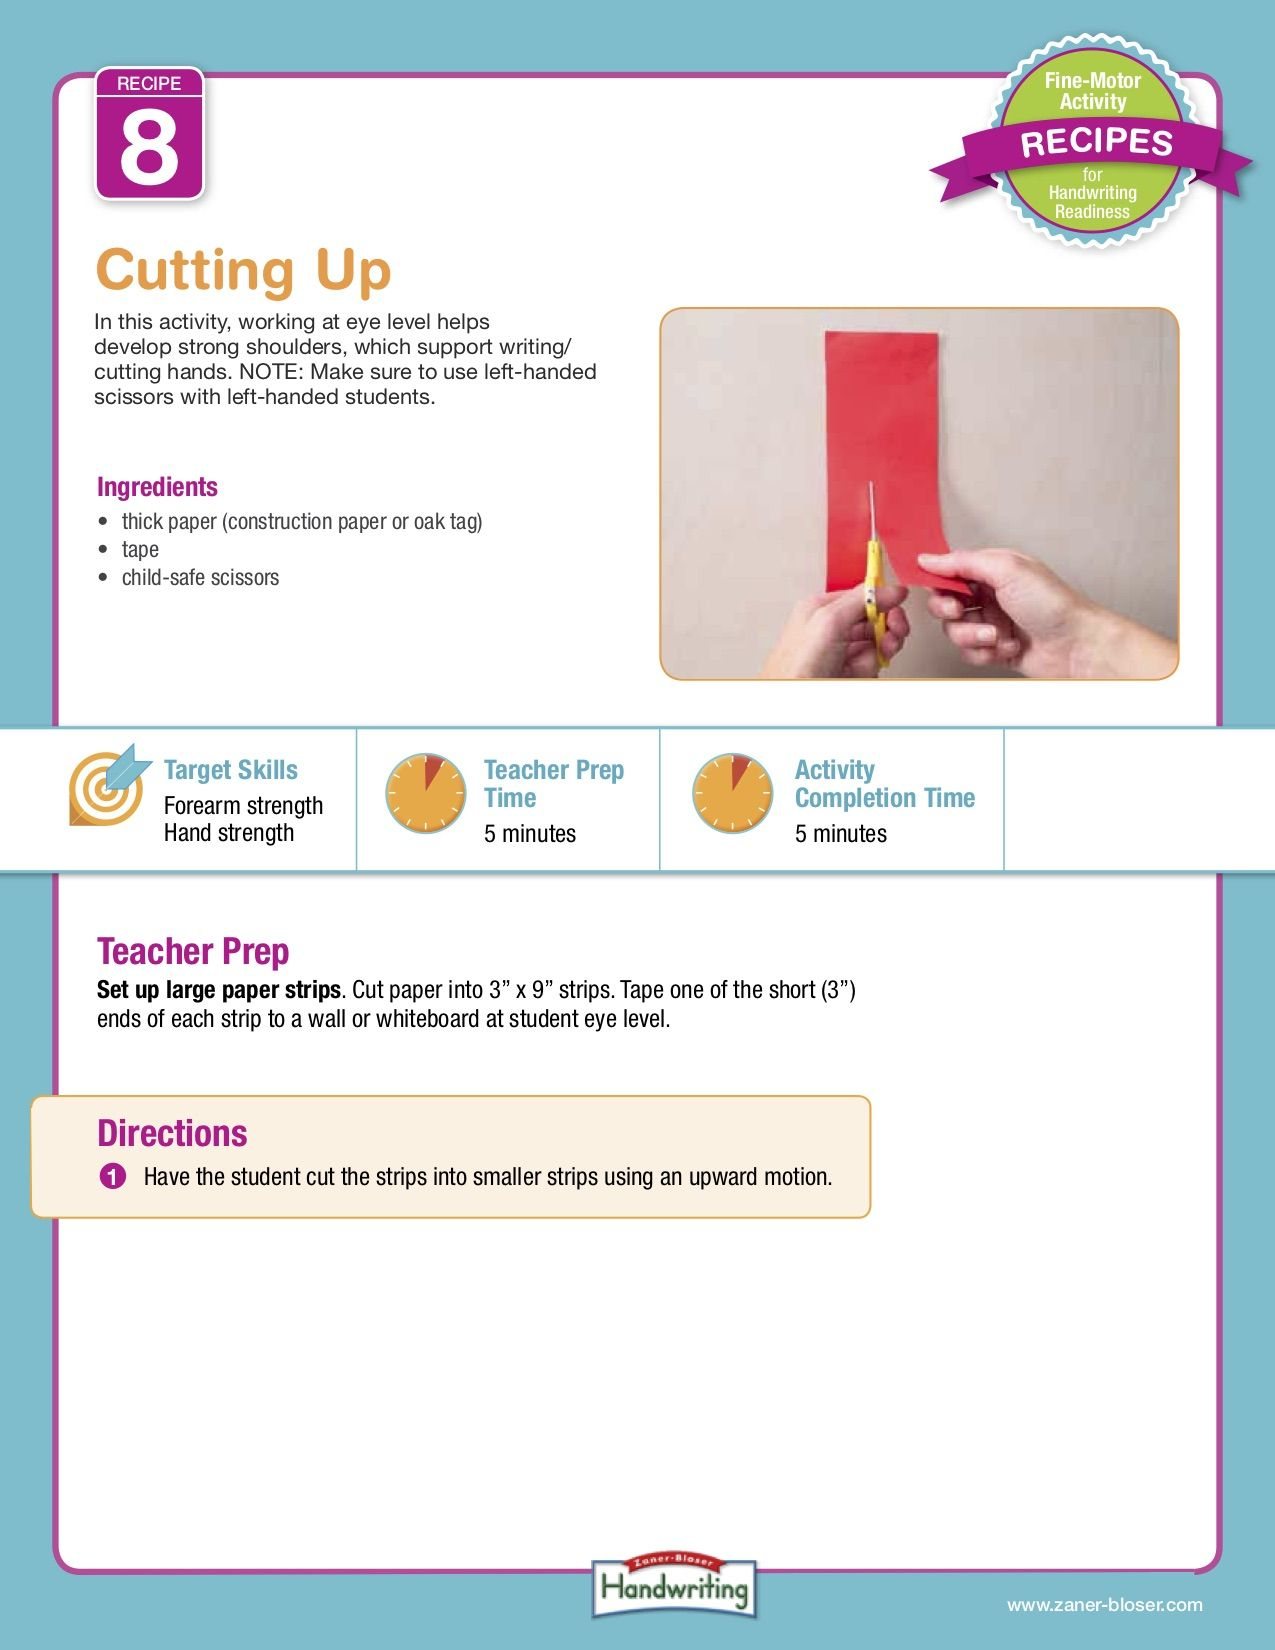 Pin On Fine Motor Activity Recipes For Handwriting Readiness